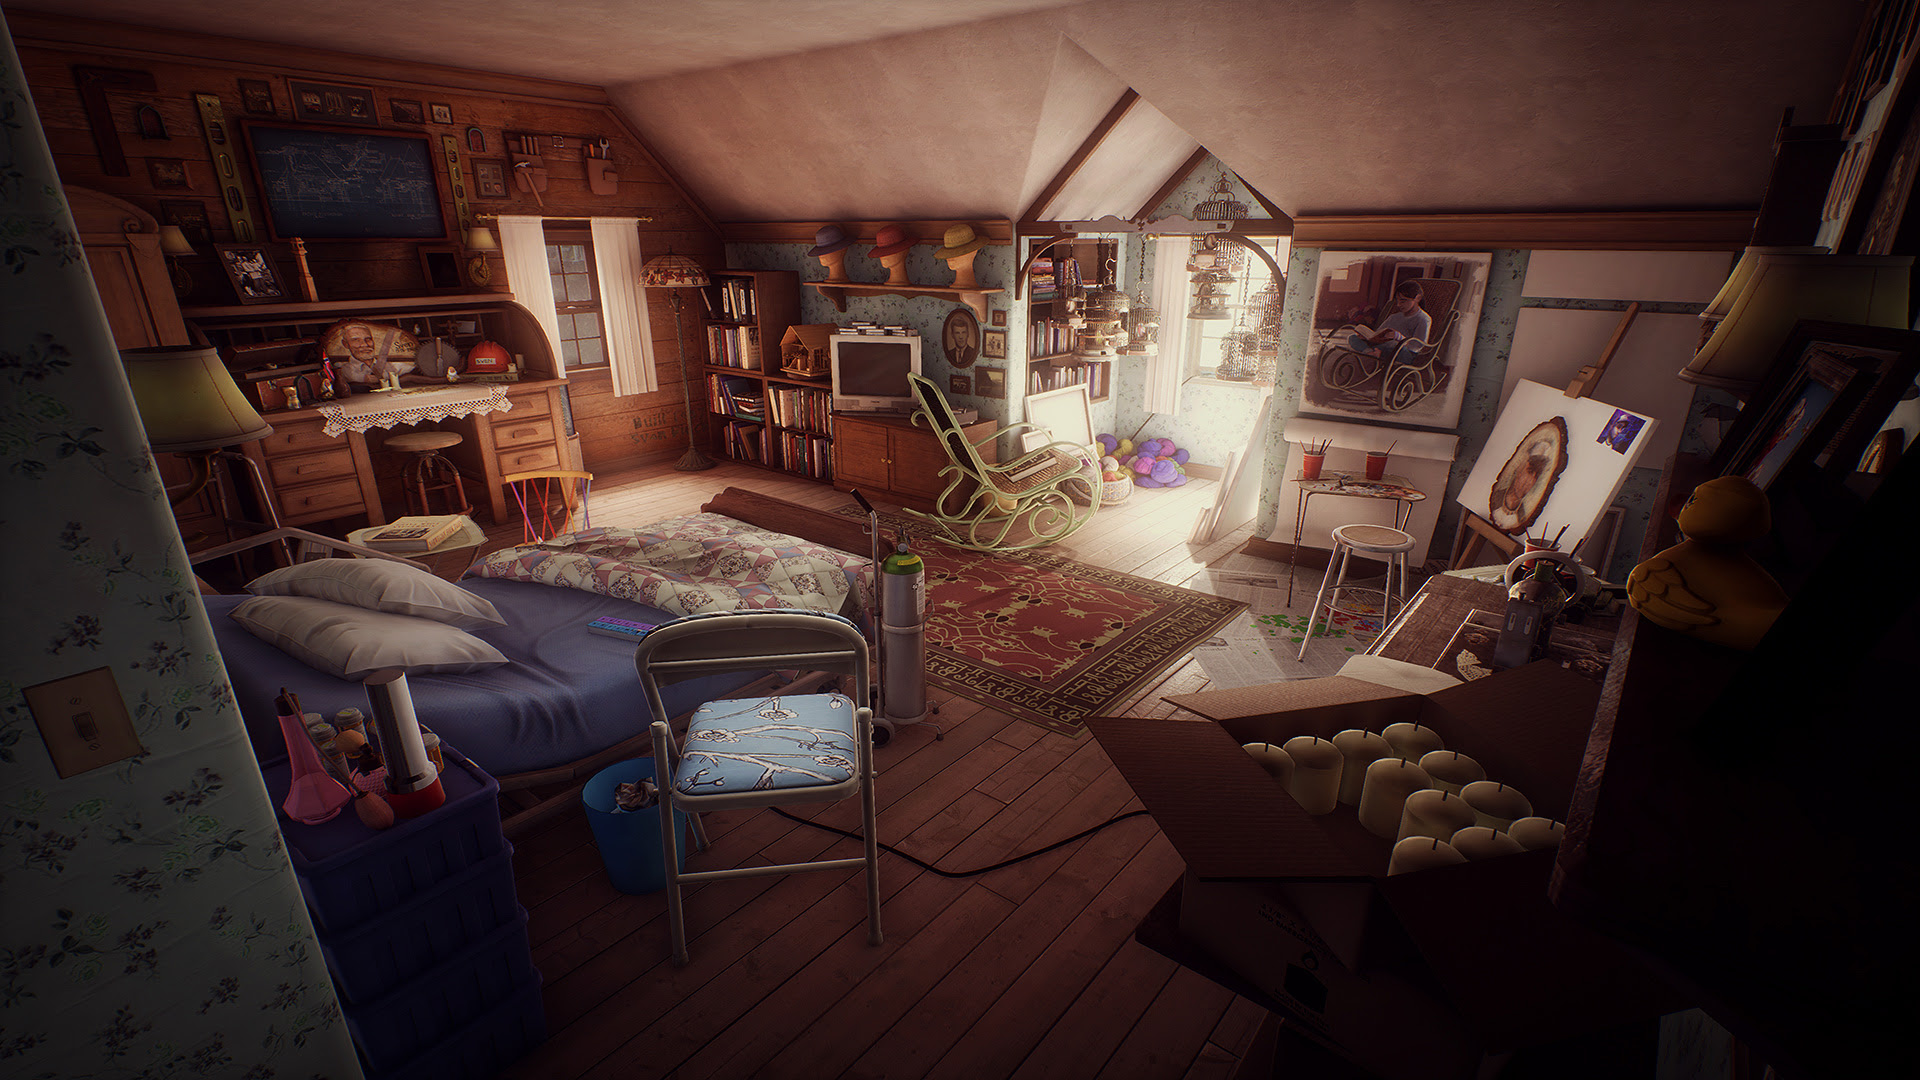 What Remains Of Edith Finch A First Person Game Where You Re The